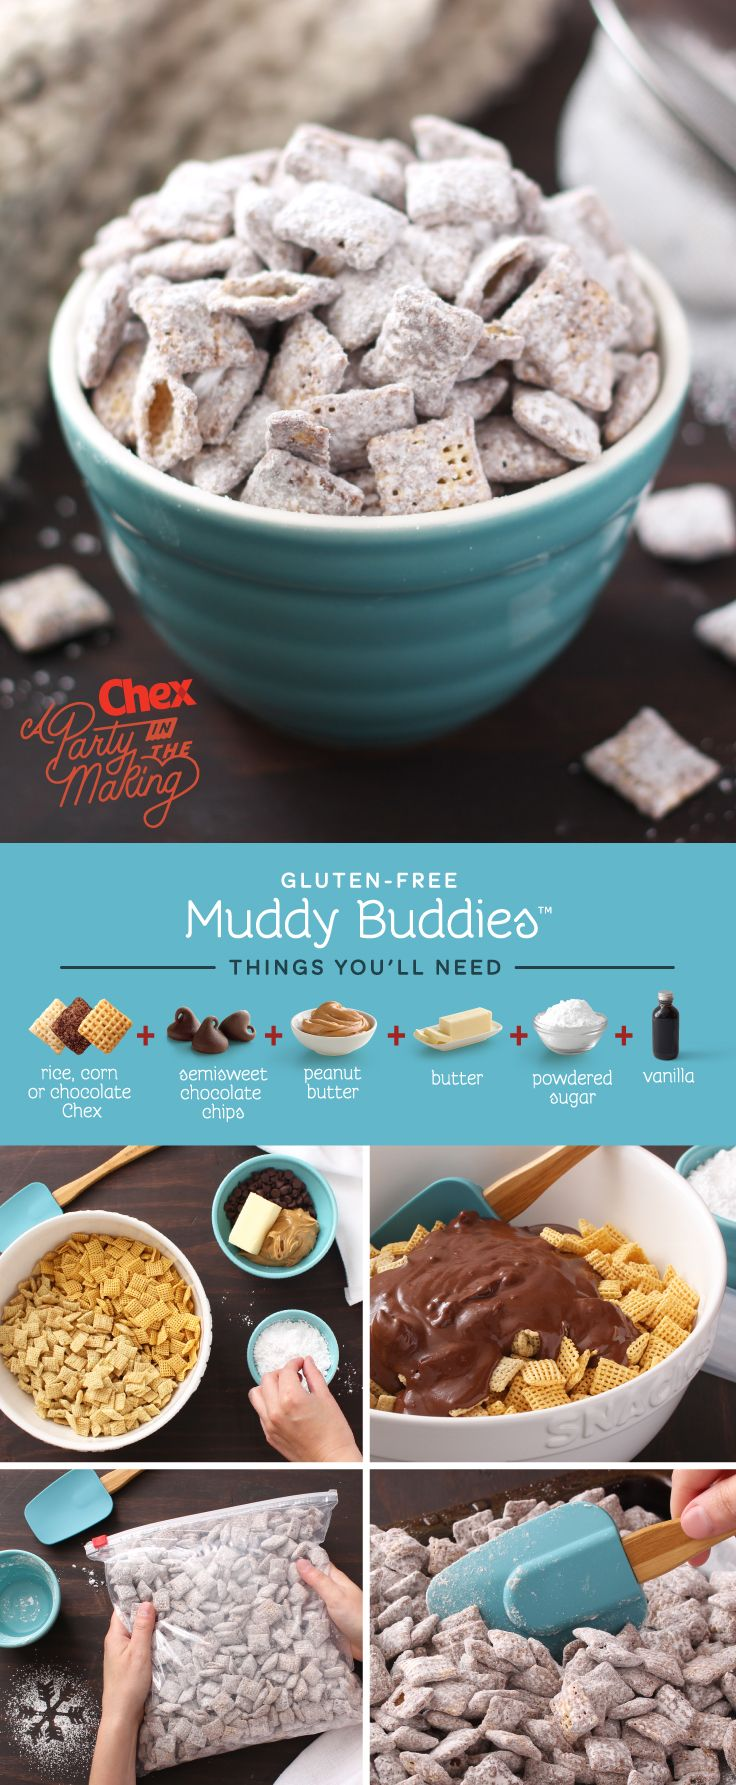 Everyone loves a snow day snack, and there's no better sweet treat than Homemade Muddy Buddies! Chex, chocolate and peanut butter team up to please a crowd of hungry sledders or shovelers in no time.